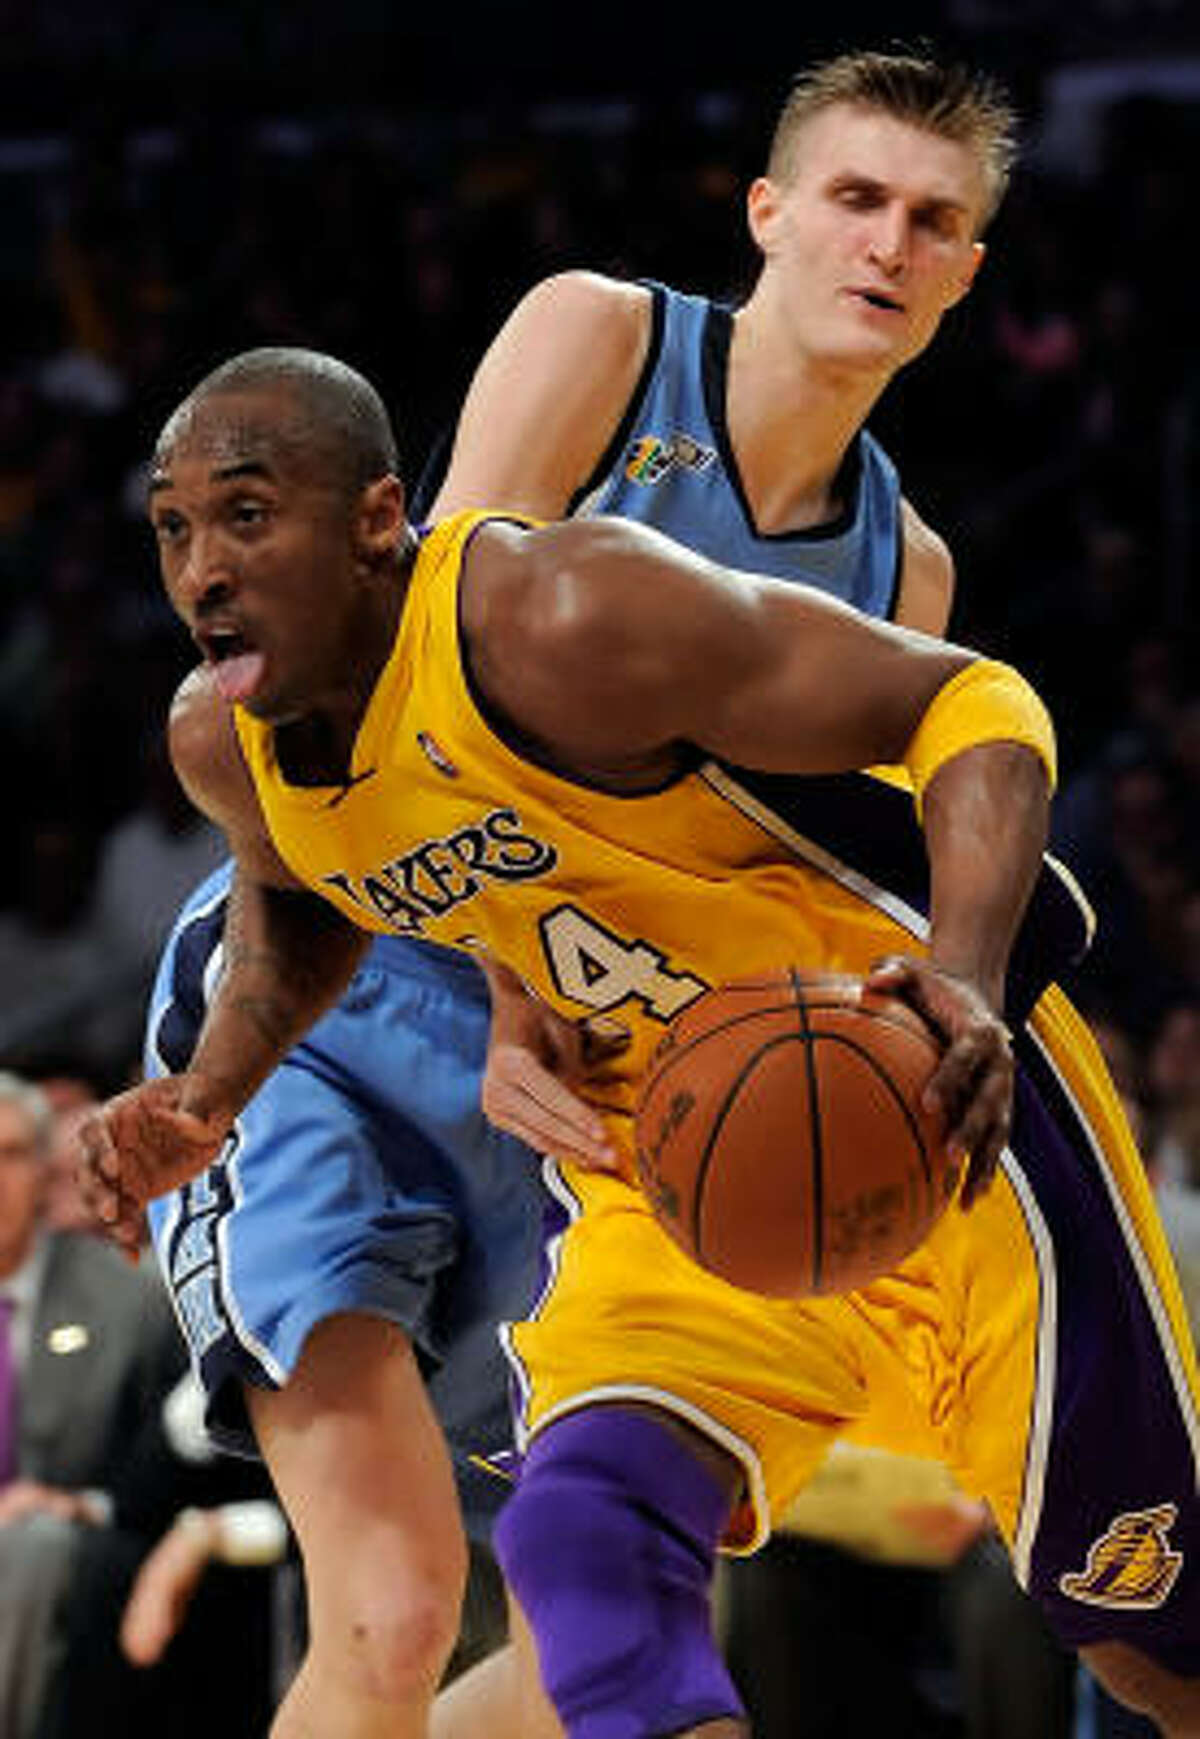 Los Angeles Lakers guard Kobe Bryant (front) drives past Utah's Andrei Kirilenko in the second quarter of Game 5 of their Western Conference playoff series. The Lakers won 107-96 to clinch the series, 4-1.